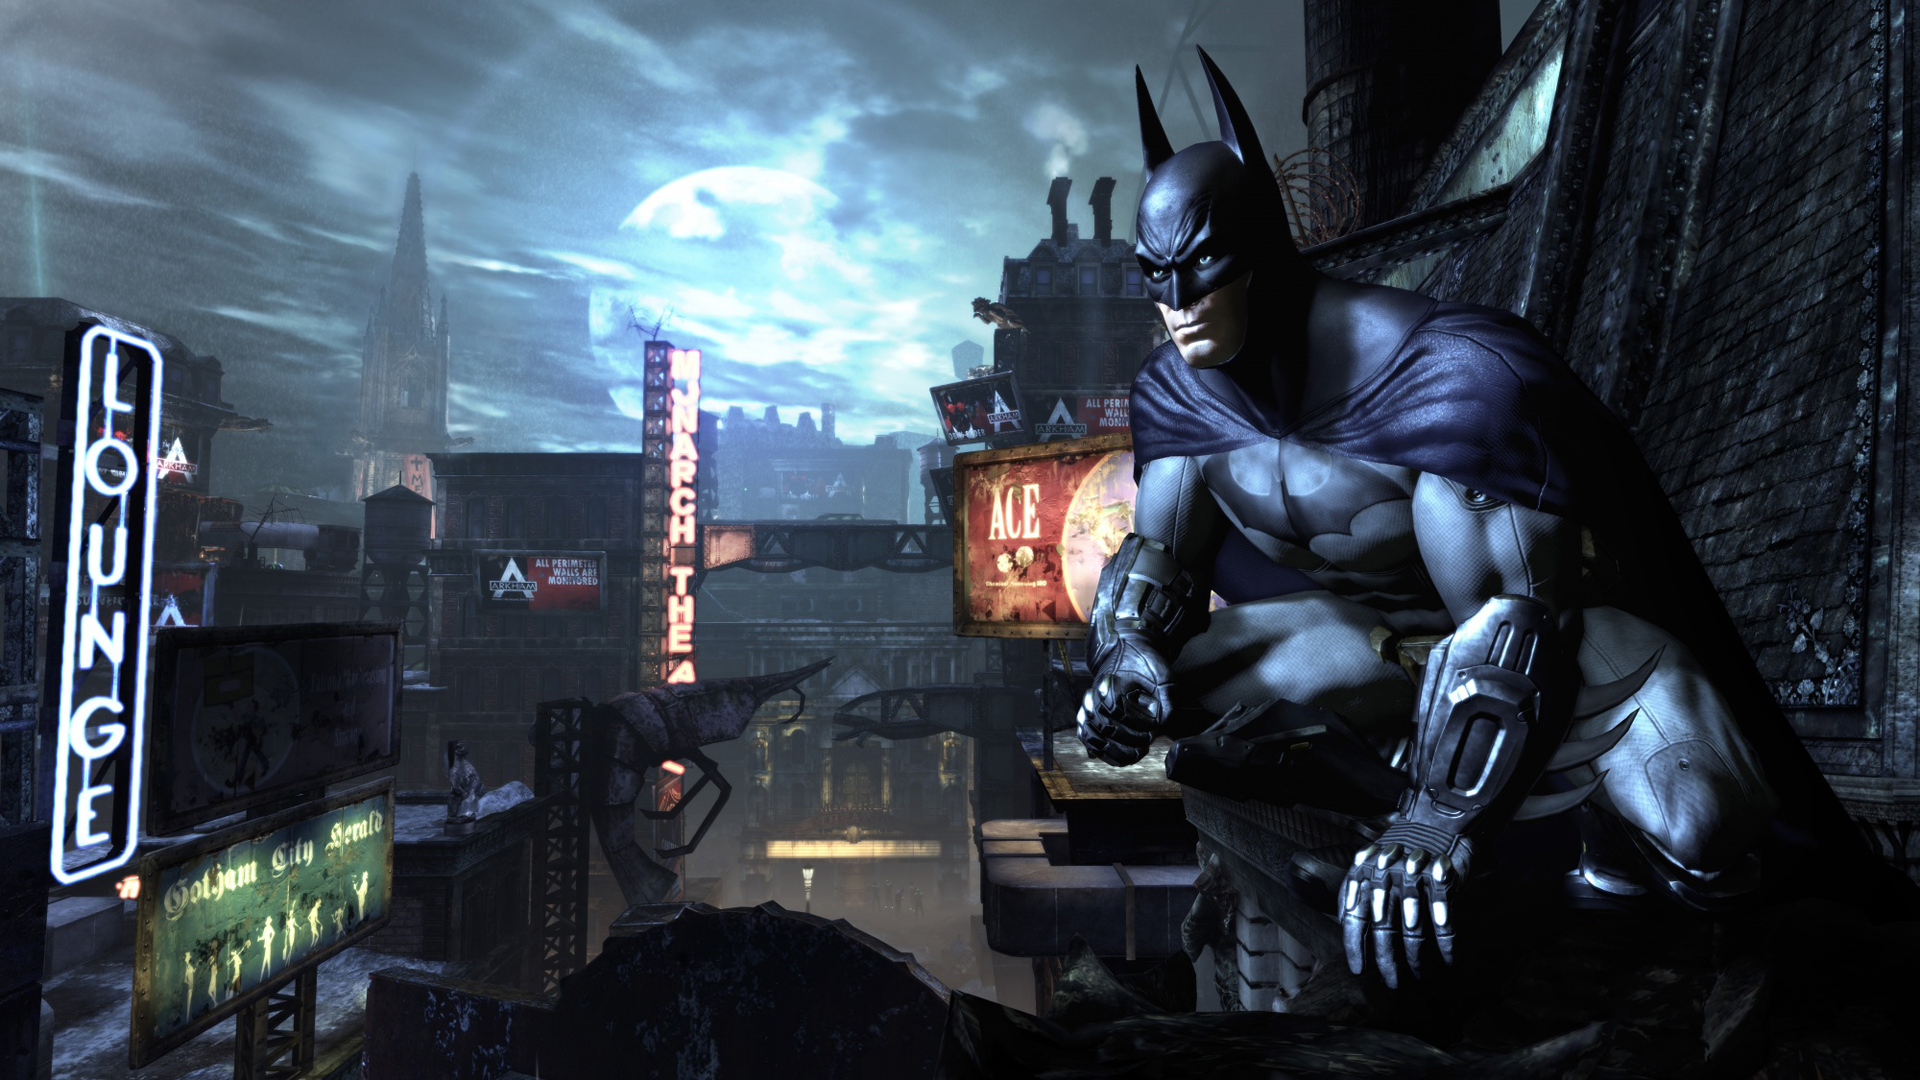 http://2.bp.blogspot.com/-vCWt11fJa5A/Tl91AG9JeQI/AAAAAAAAZGs/tN_kribhUnk/d/Batman+-+Arkham+City+Wallpapers+%25281%2529.jpg